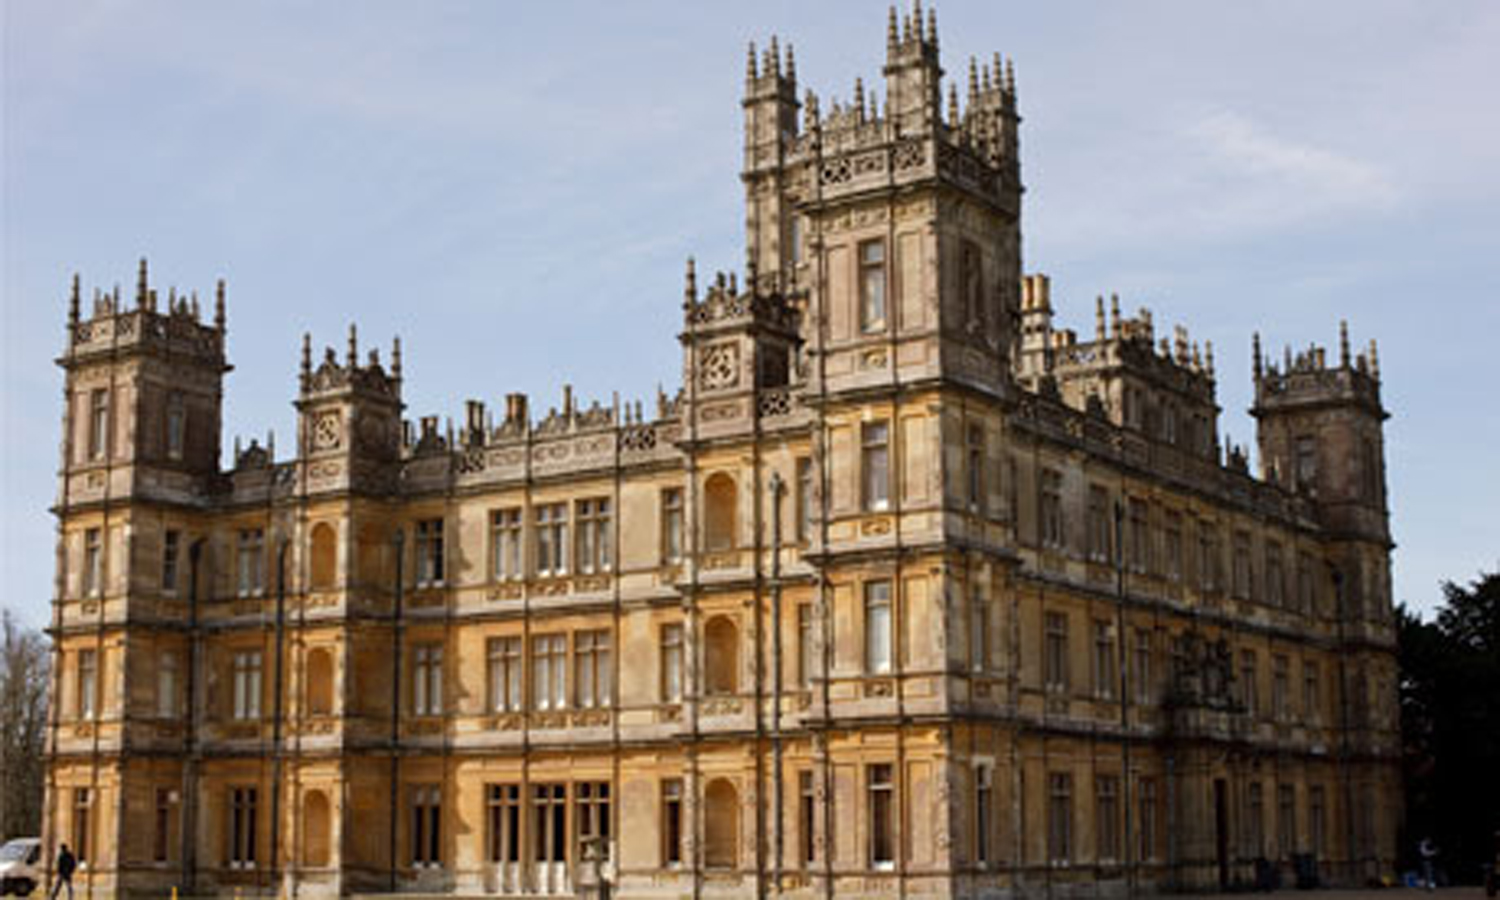 Halcyon days downton abbey marathon - Downton abbey chateau ...